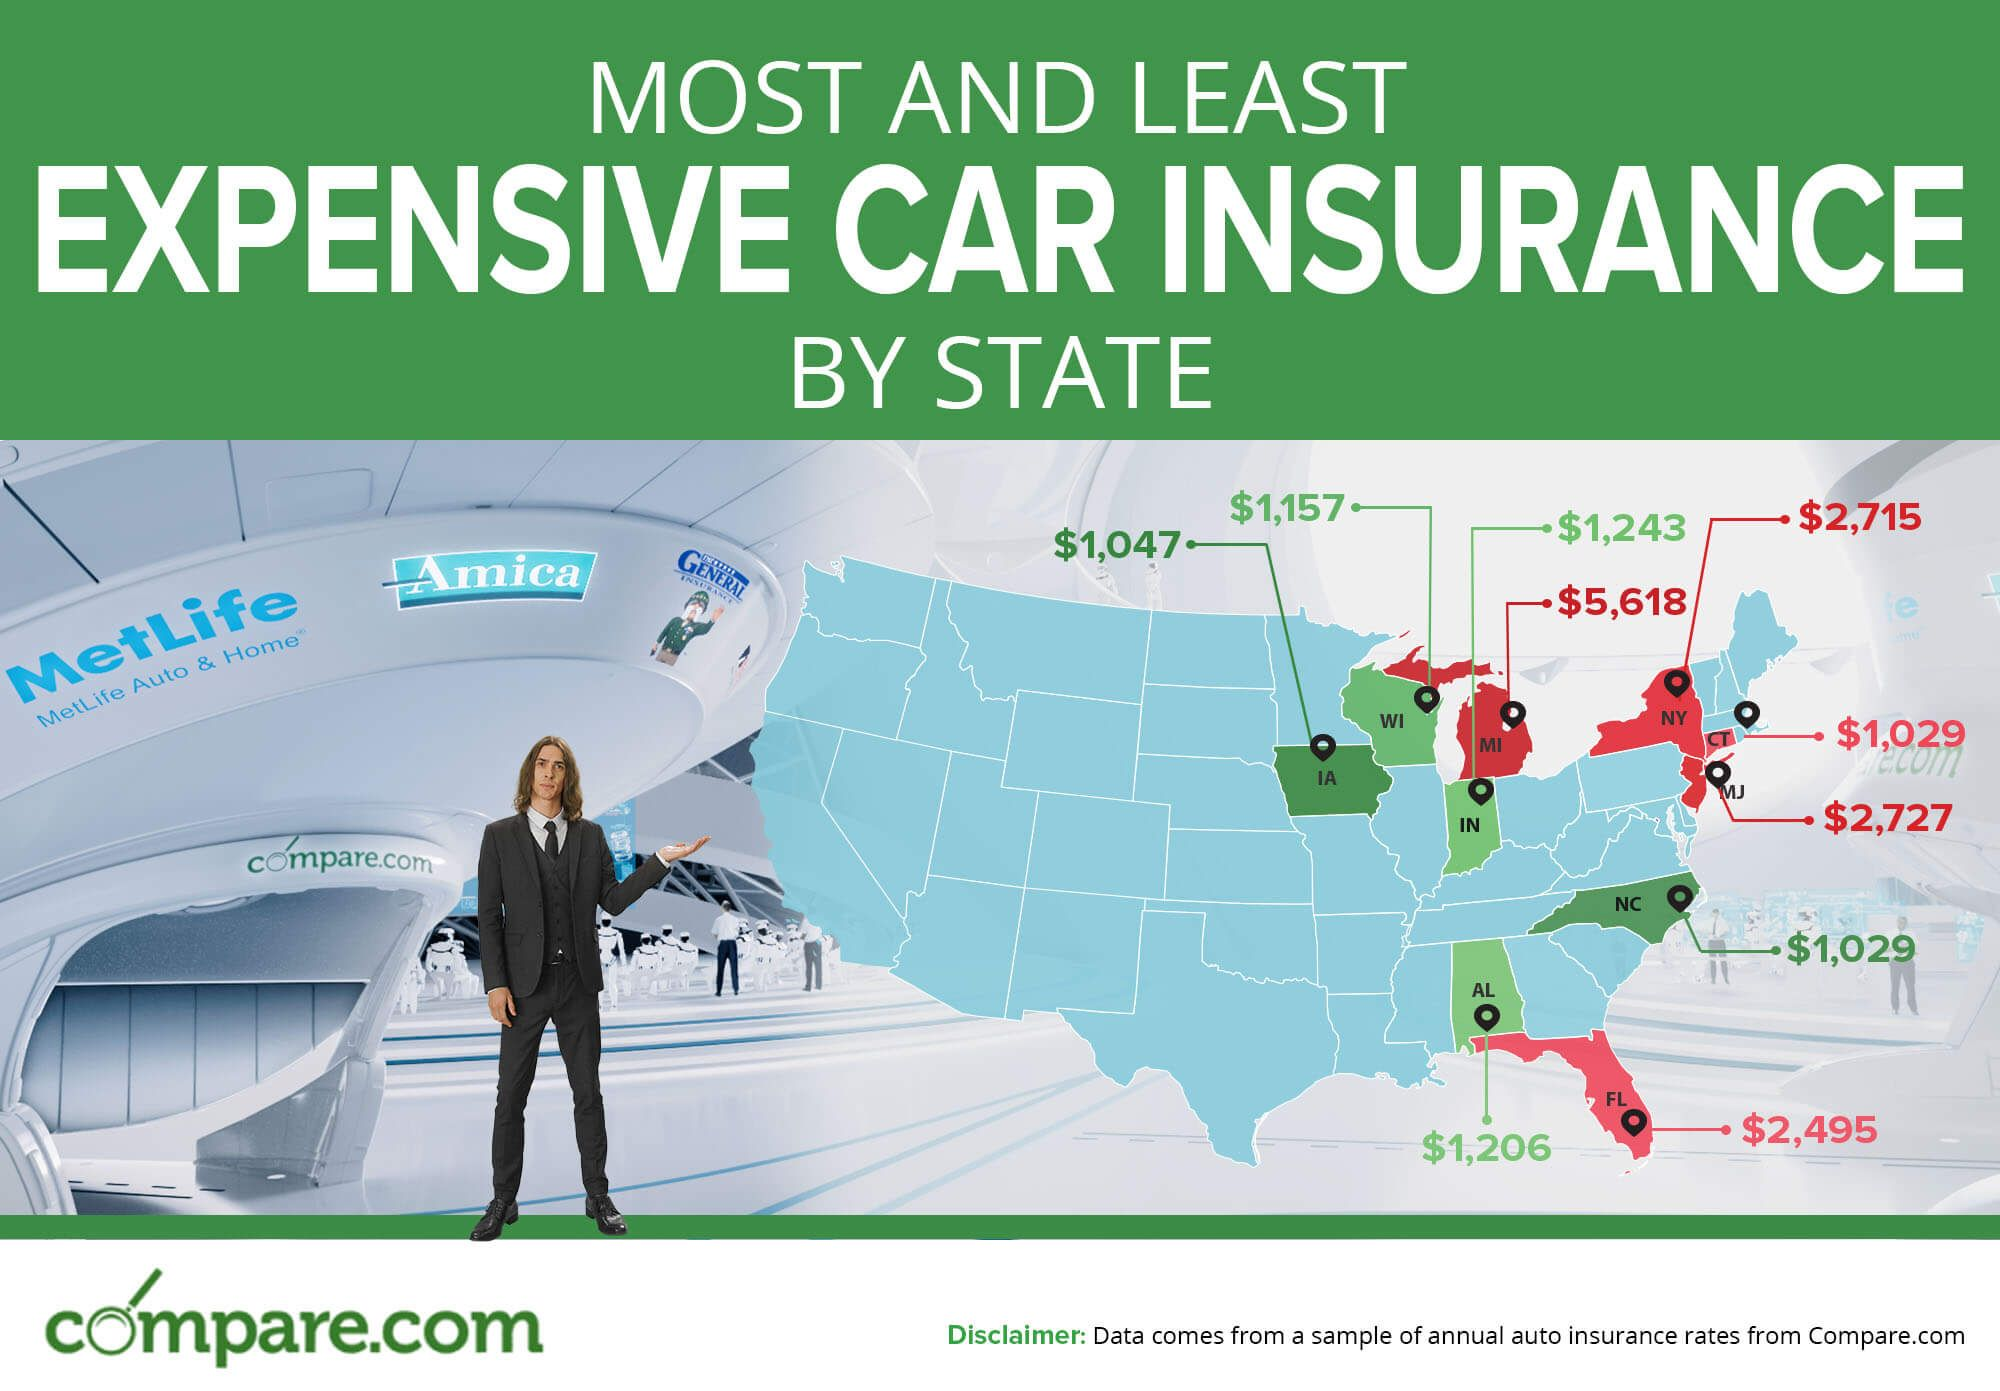 Compare Car Insurance Prices By State In Our Infographic Car Insurance Car Insurance Comparison Inexpensive Car Insurance